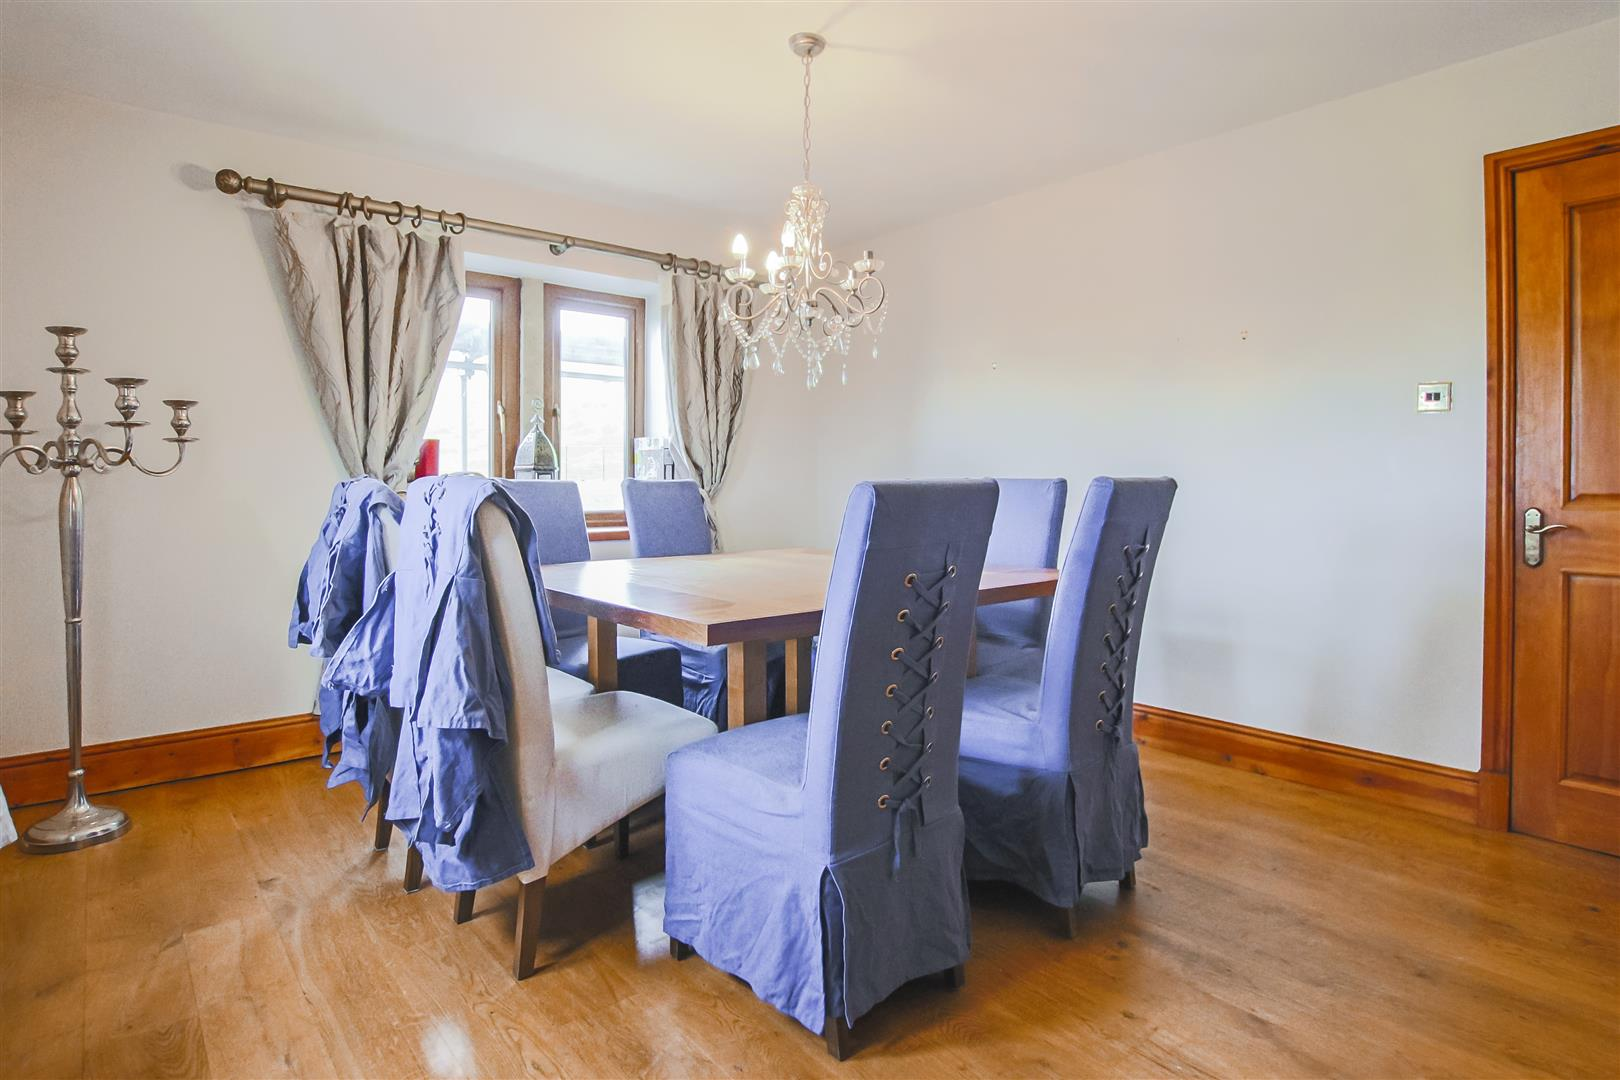 5 Bedroom Barn Conversion For Sale - Image 35